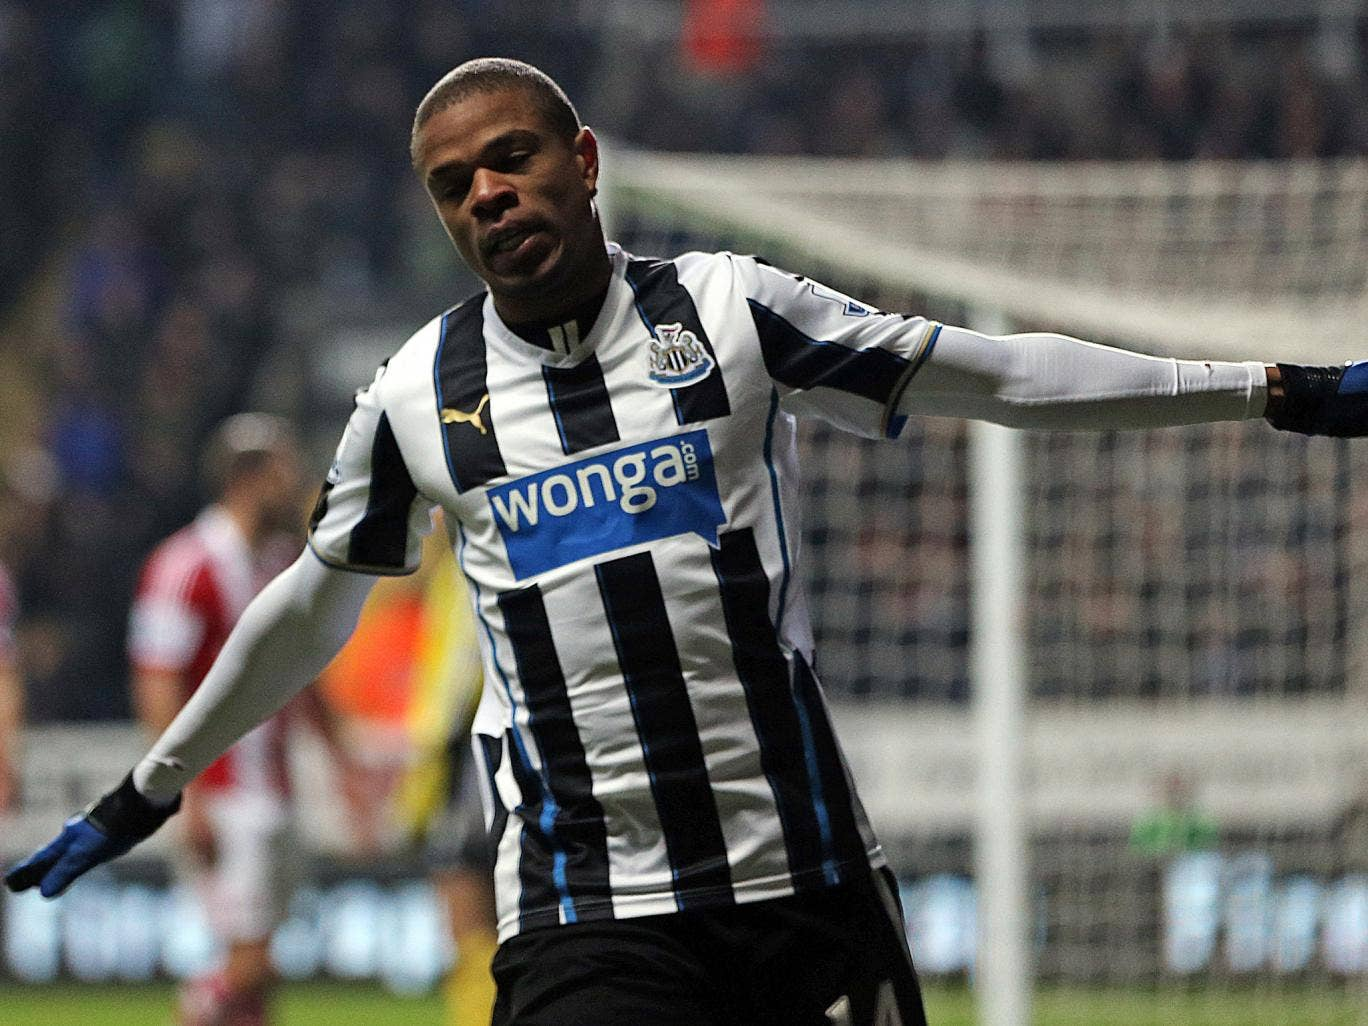 Loic Remy celebrates after scoring for Newcastle against Stoke